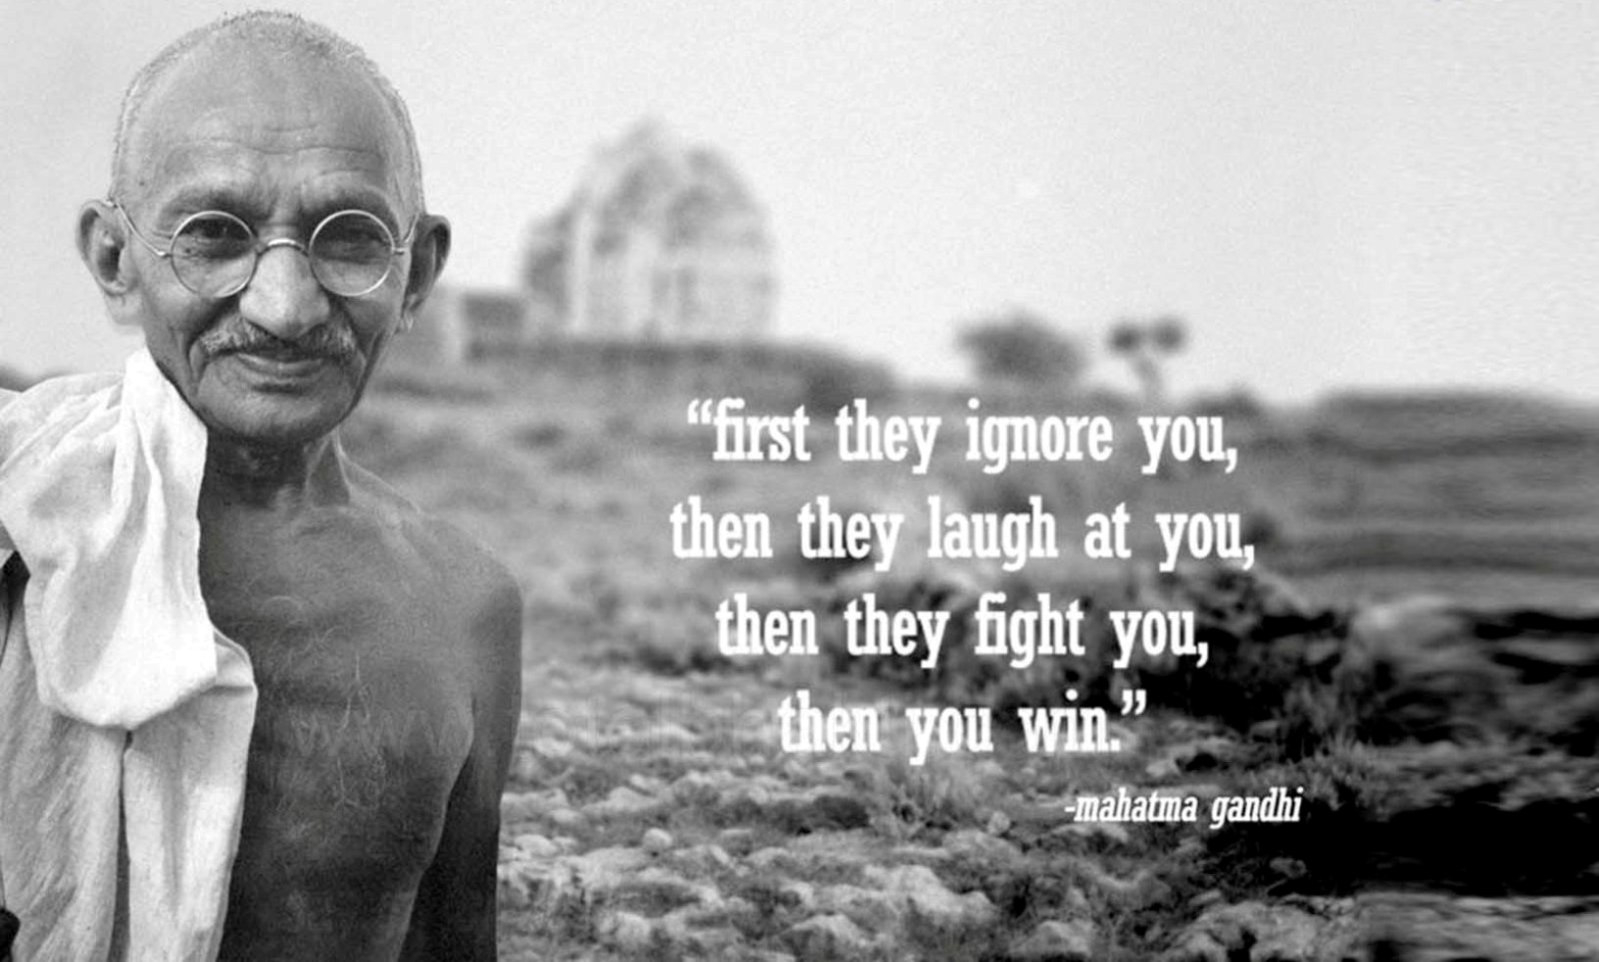 First they ignore you, then they laugh at you, then they fight you, then you win - Mahatma Gandhi